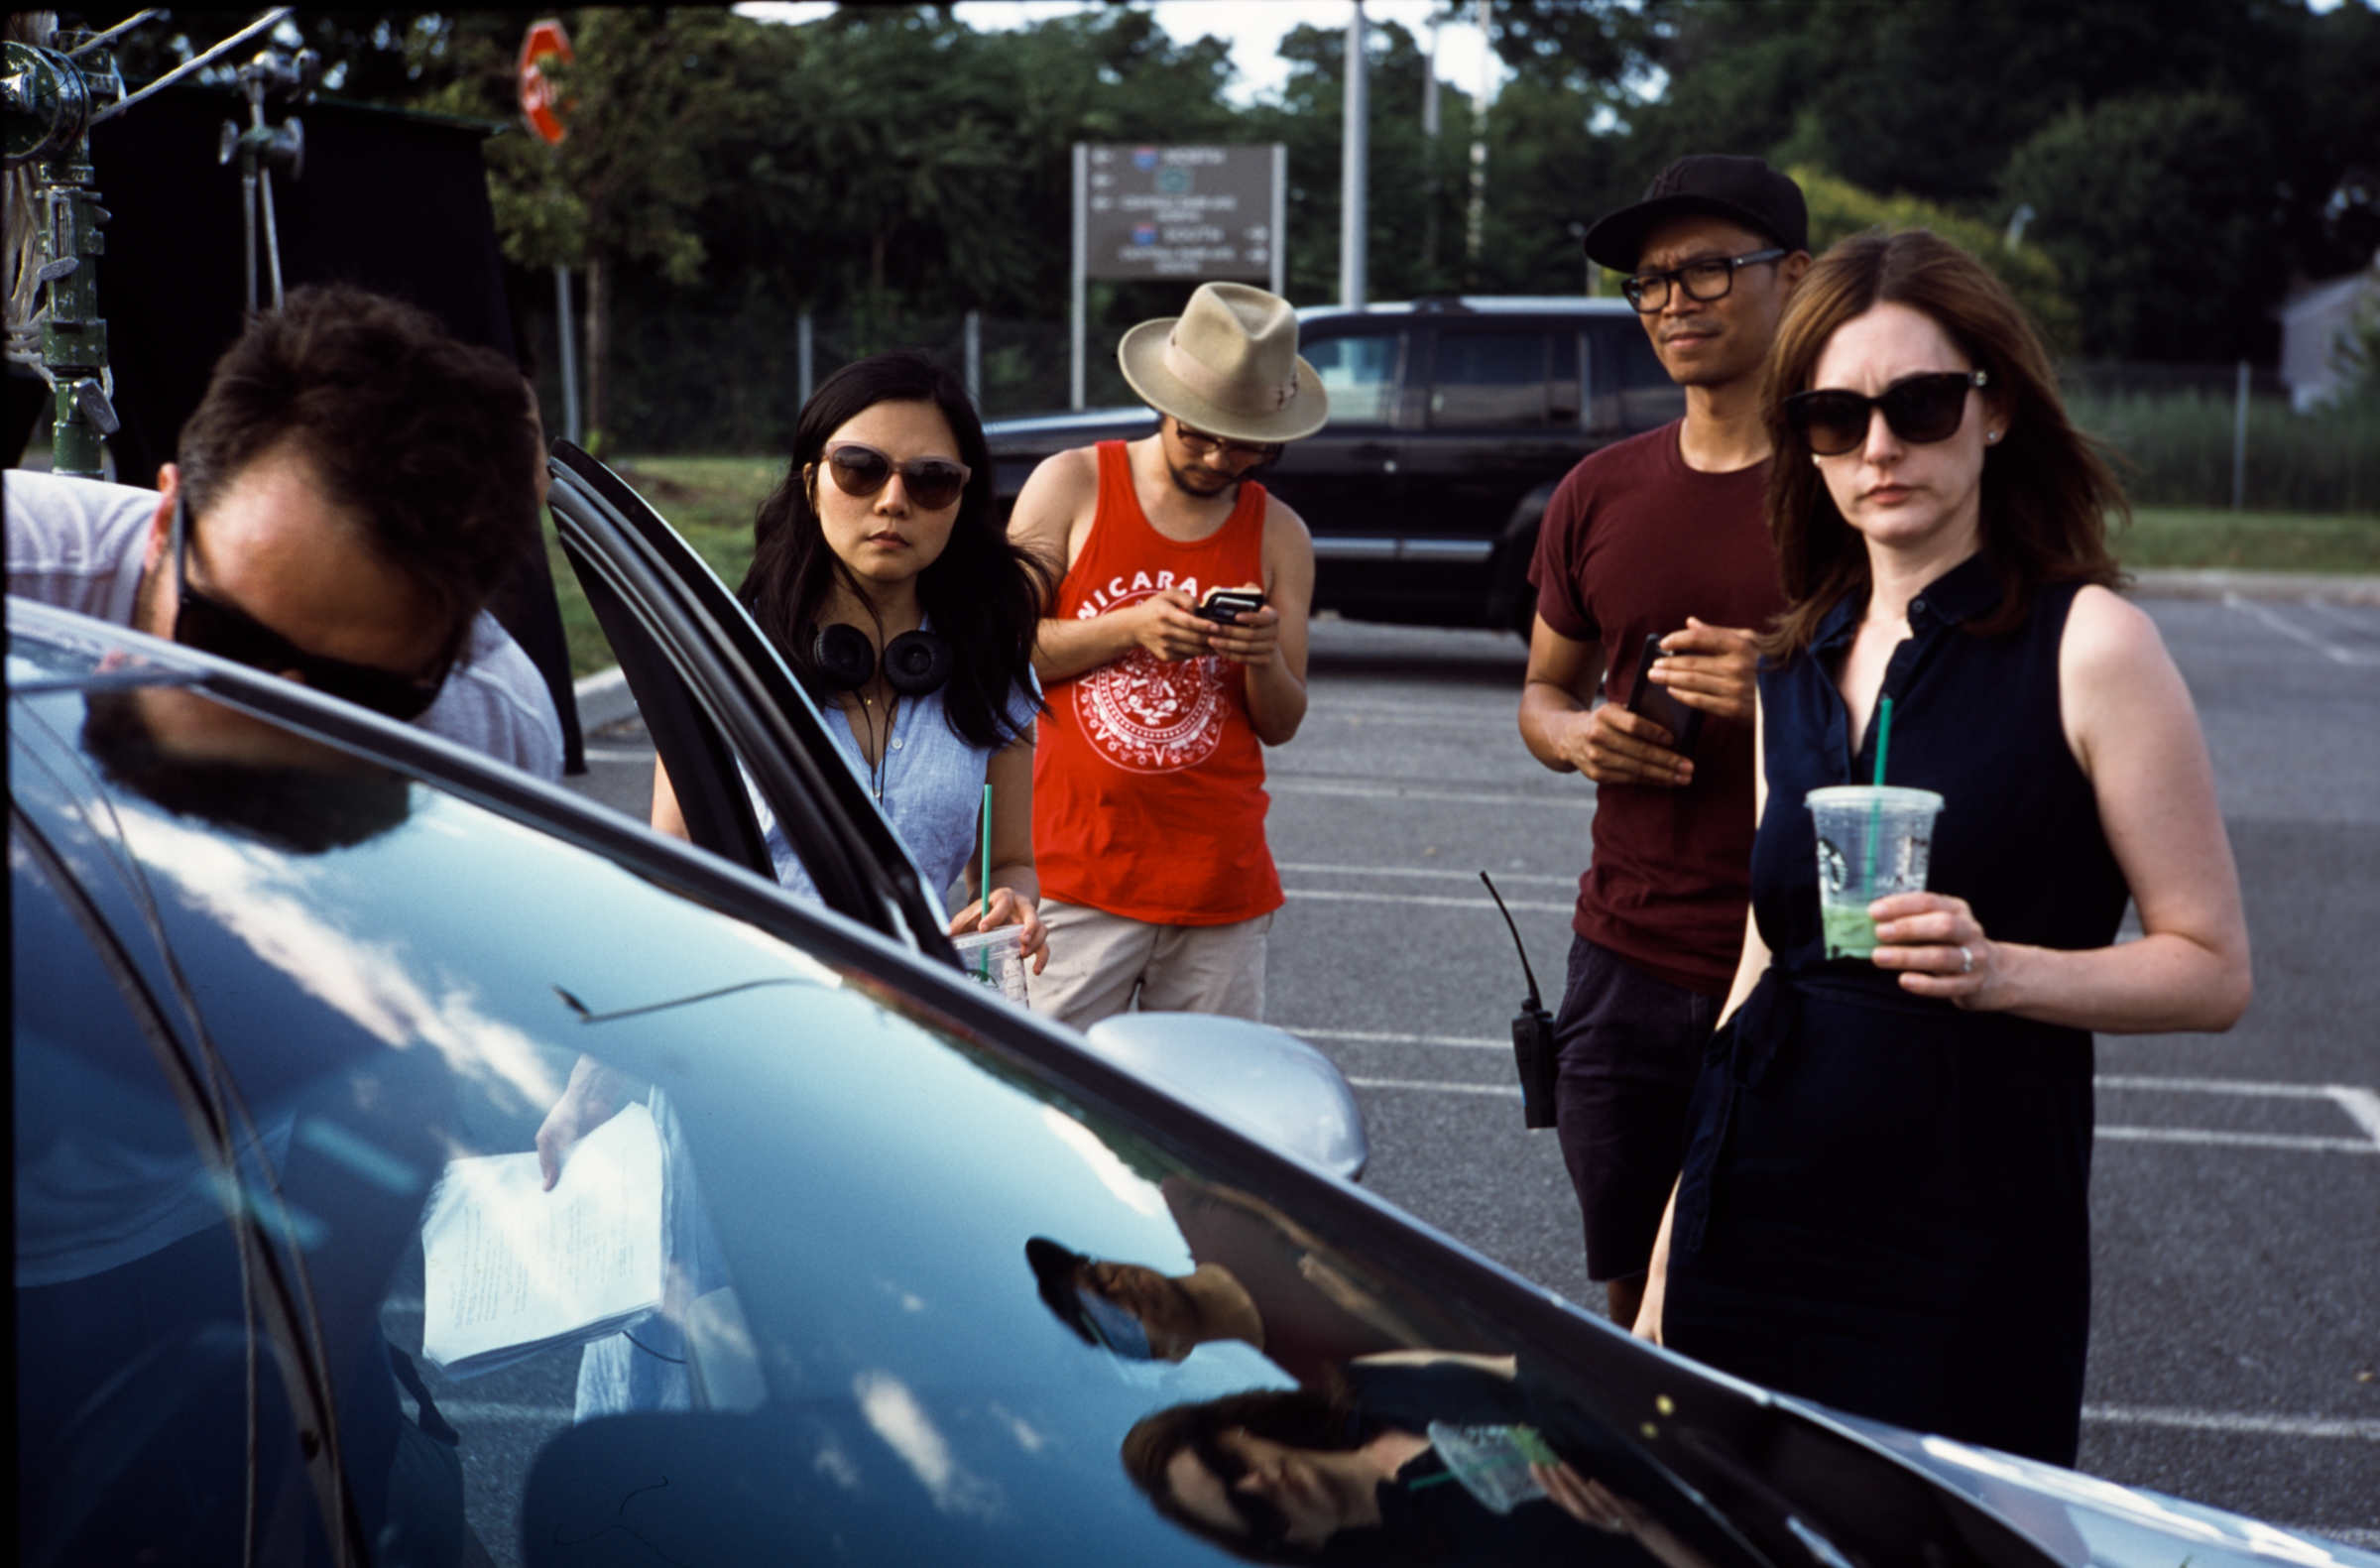 from L to R: cinematographer Shlomo Godder, writer/director Millicent Cho, 2nd AC Ambrose Eng, 1st AD Carlo Velayo, and lead actress Marguerite Stimpson around the picture car  shot on 35mm Fuji Provia